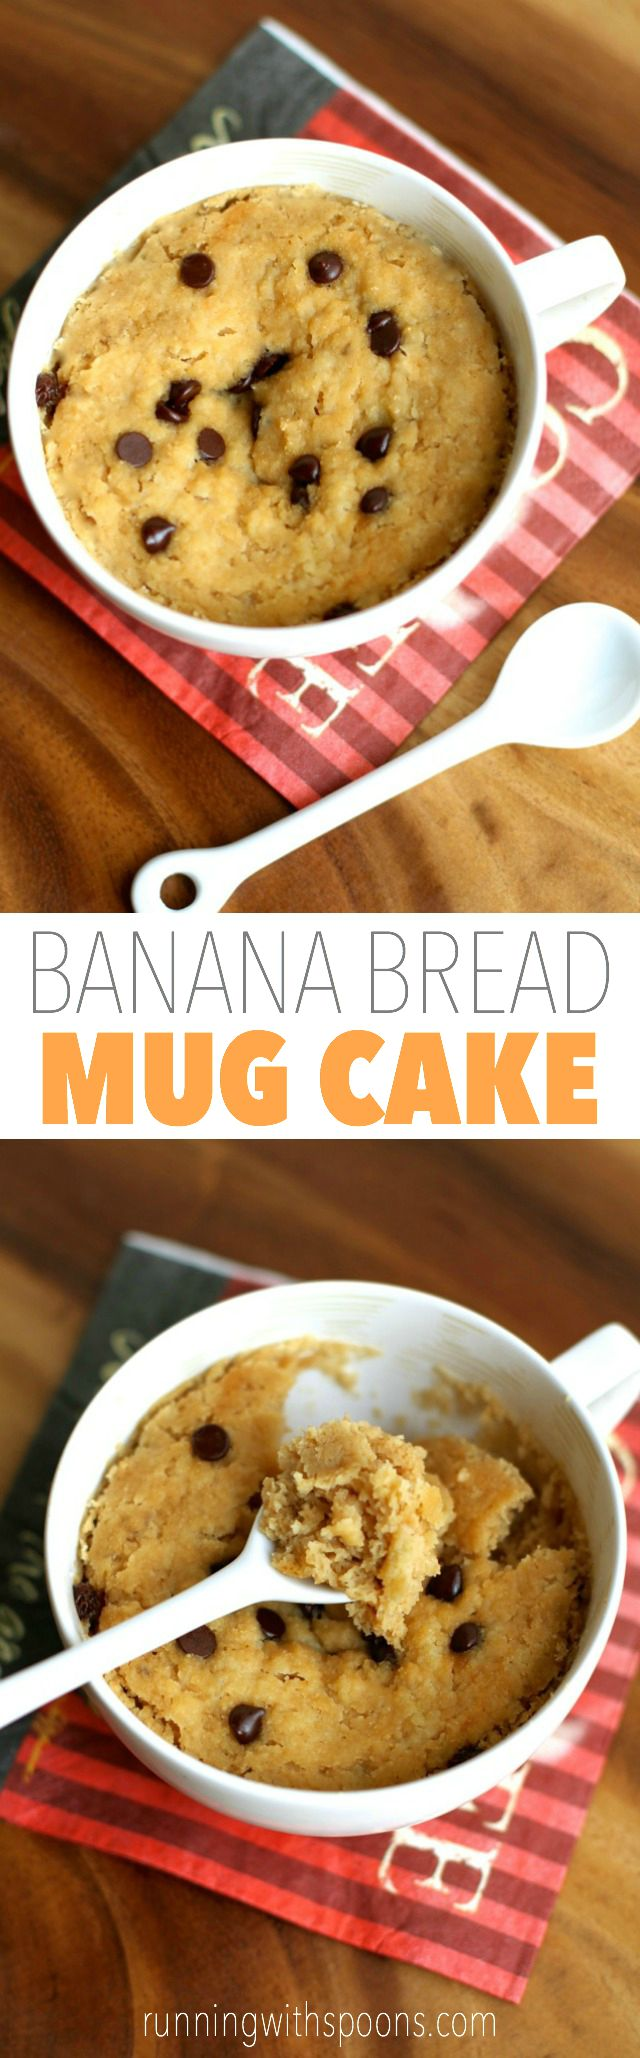 Banana Bread Mug Cake -- 5 minutes and 5 ingredients is all you need to make this healthy and delicious vegan mug cake! || runningwithspoons.com #glutenfree #vegan